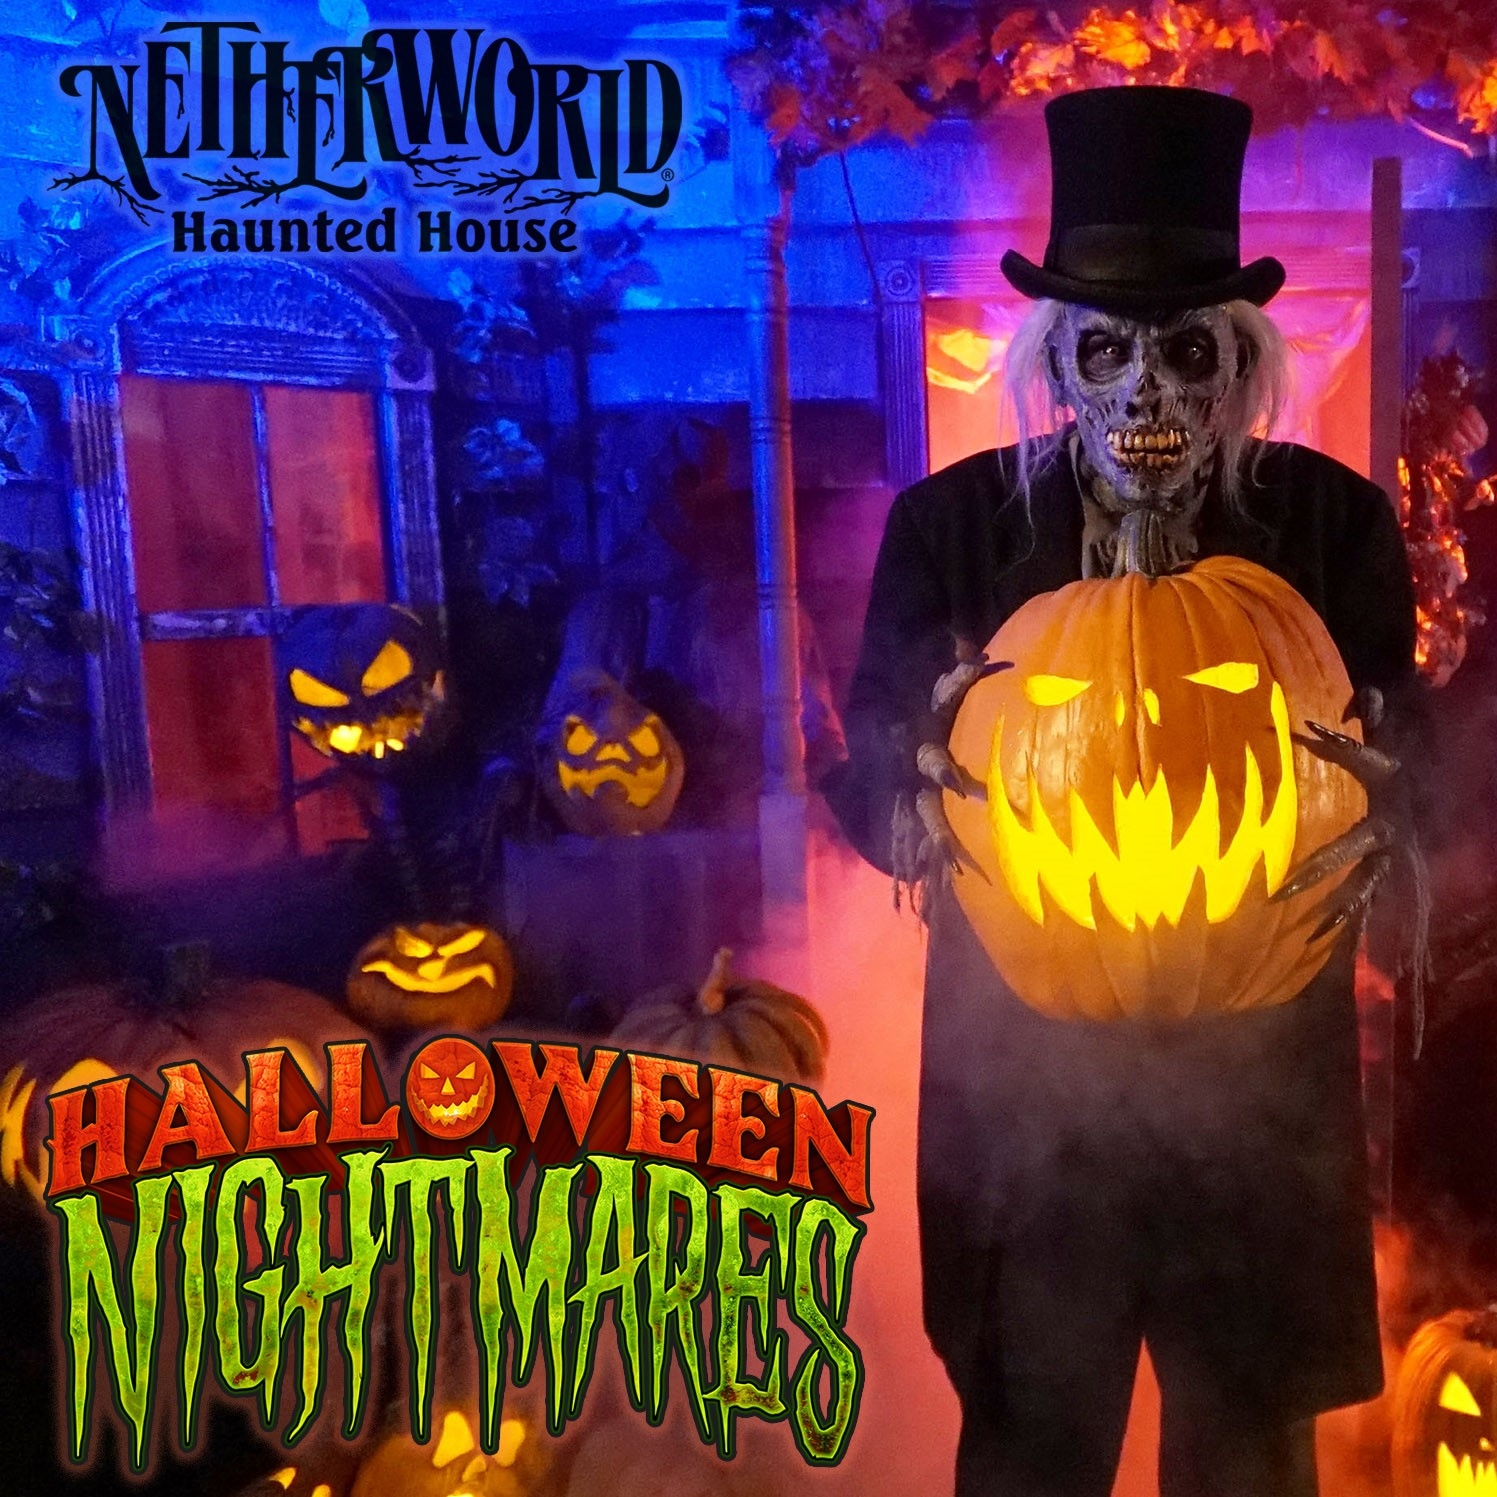 Get Your Tix For NETHERWORLD Haunted House